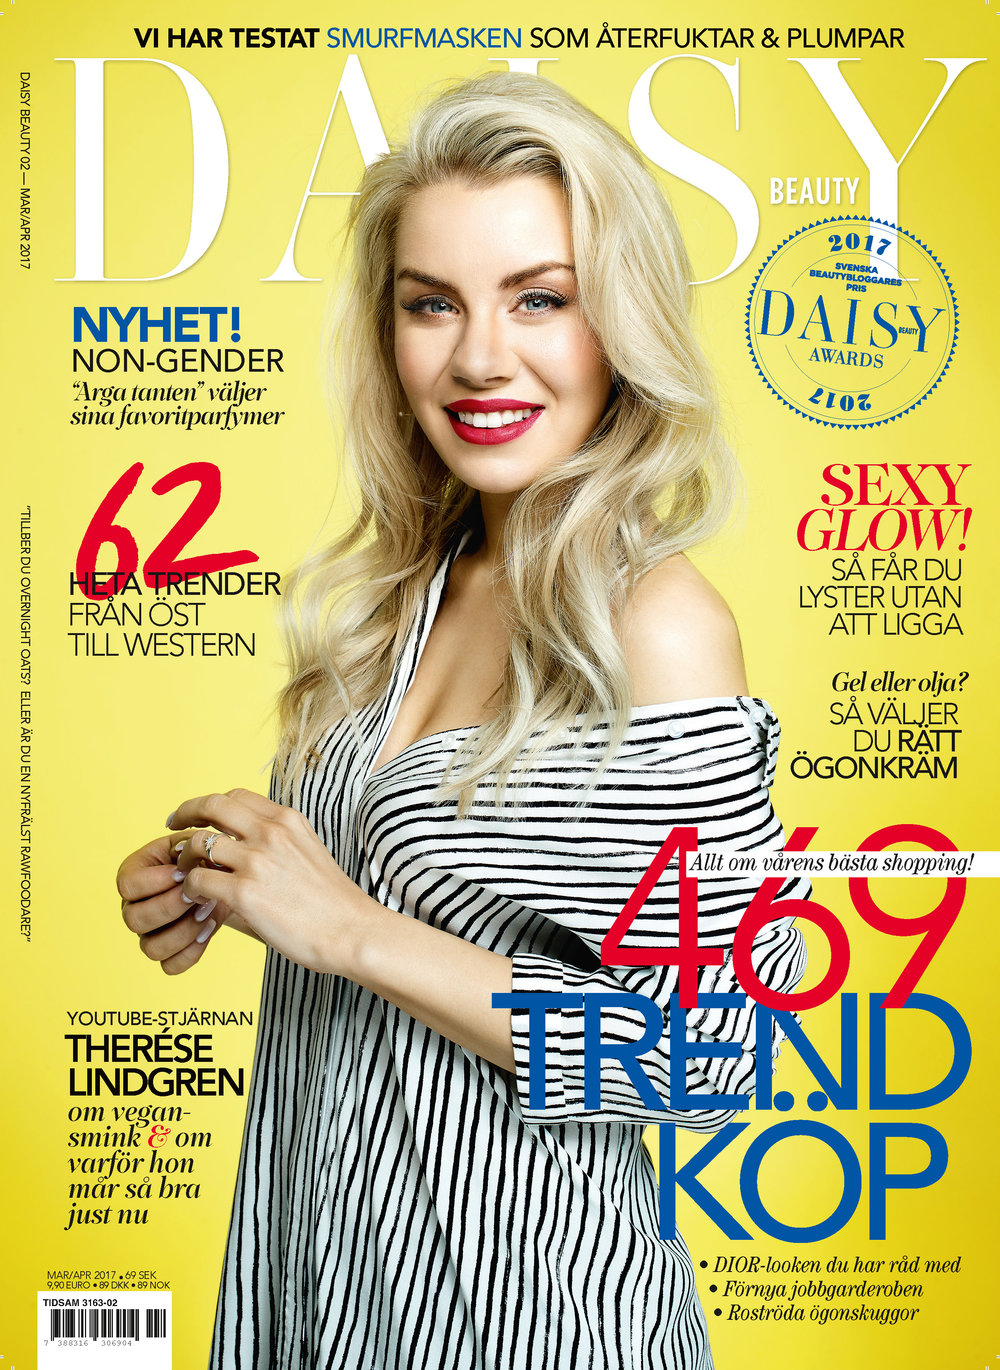 Cover With Therese Lindgren For Daisy Beauty Magazine